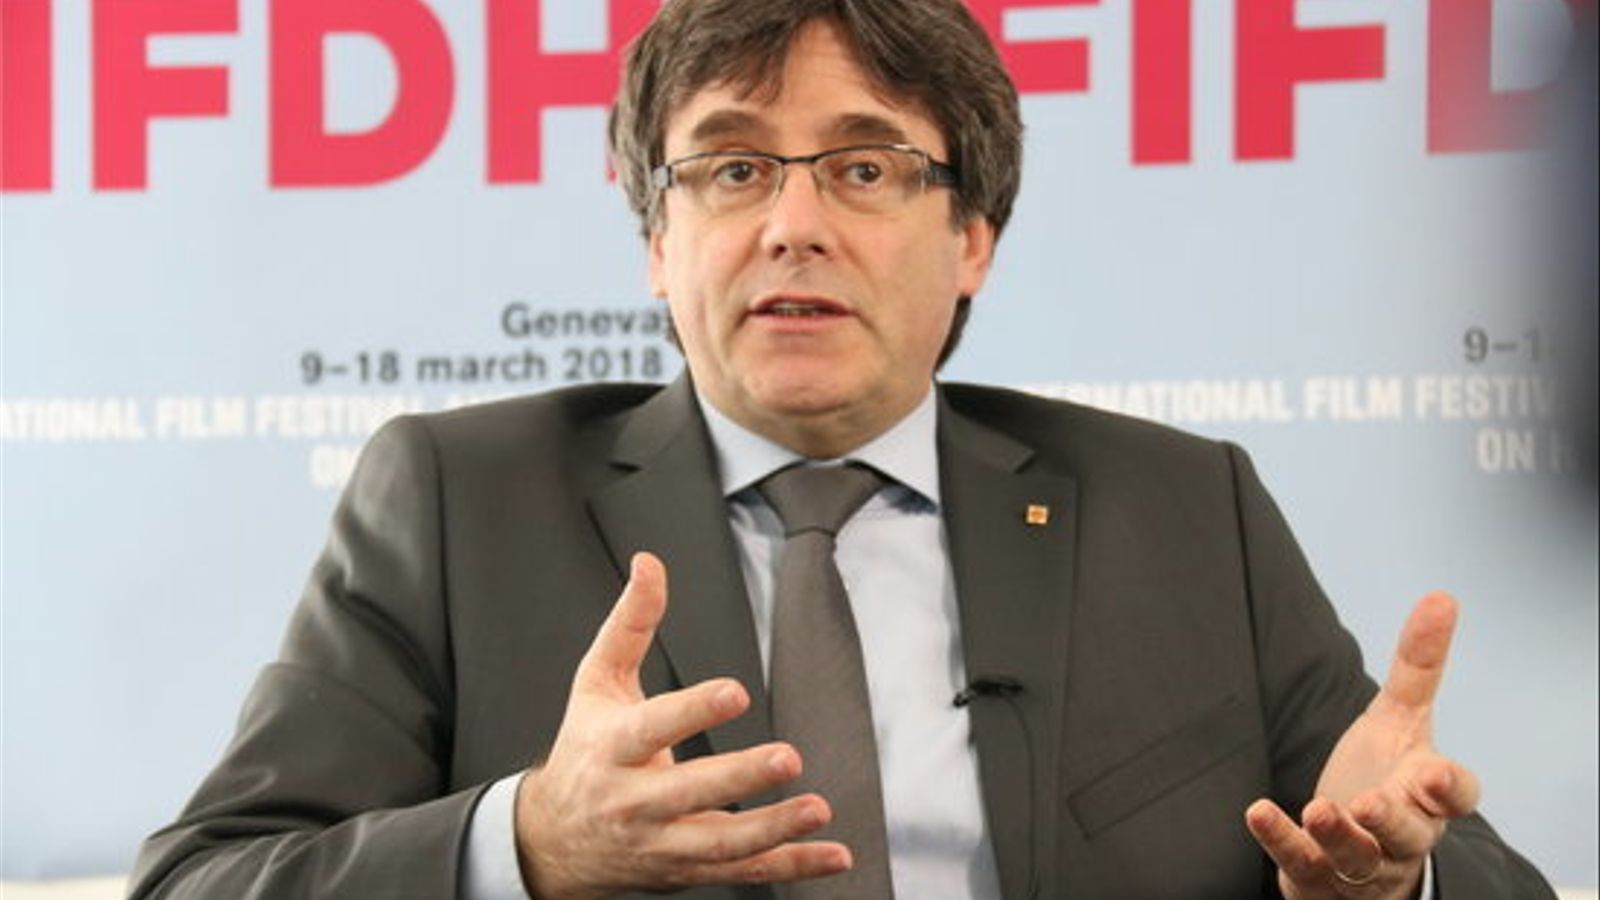 El president Carles Puigdemont a Ginebra